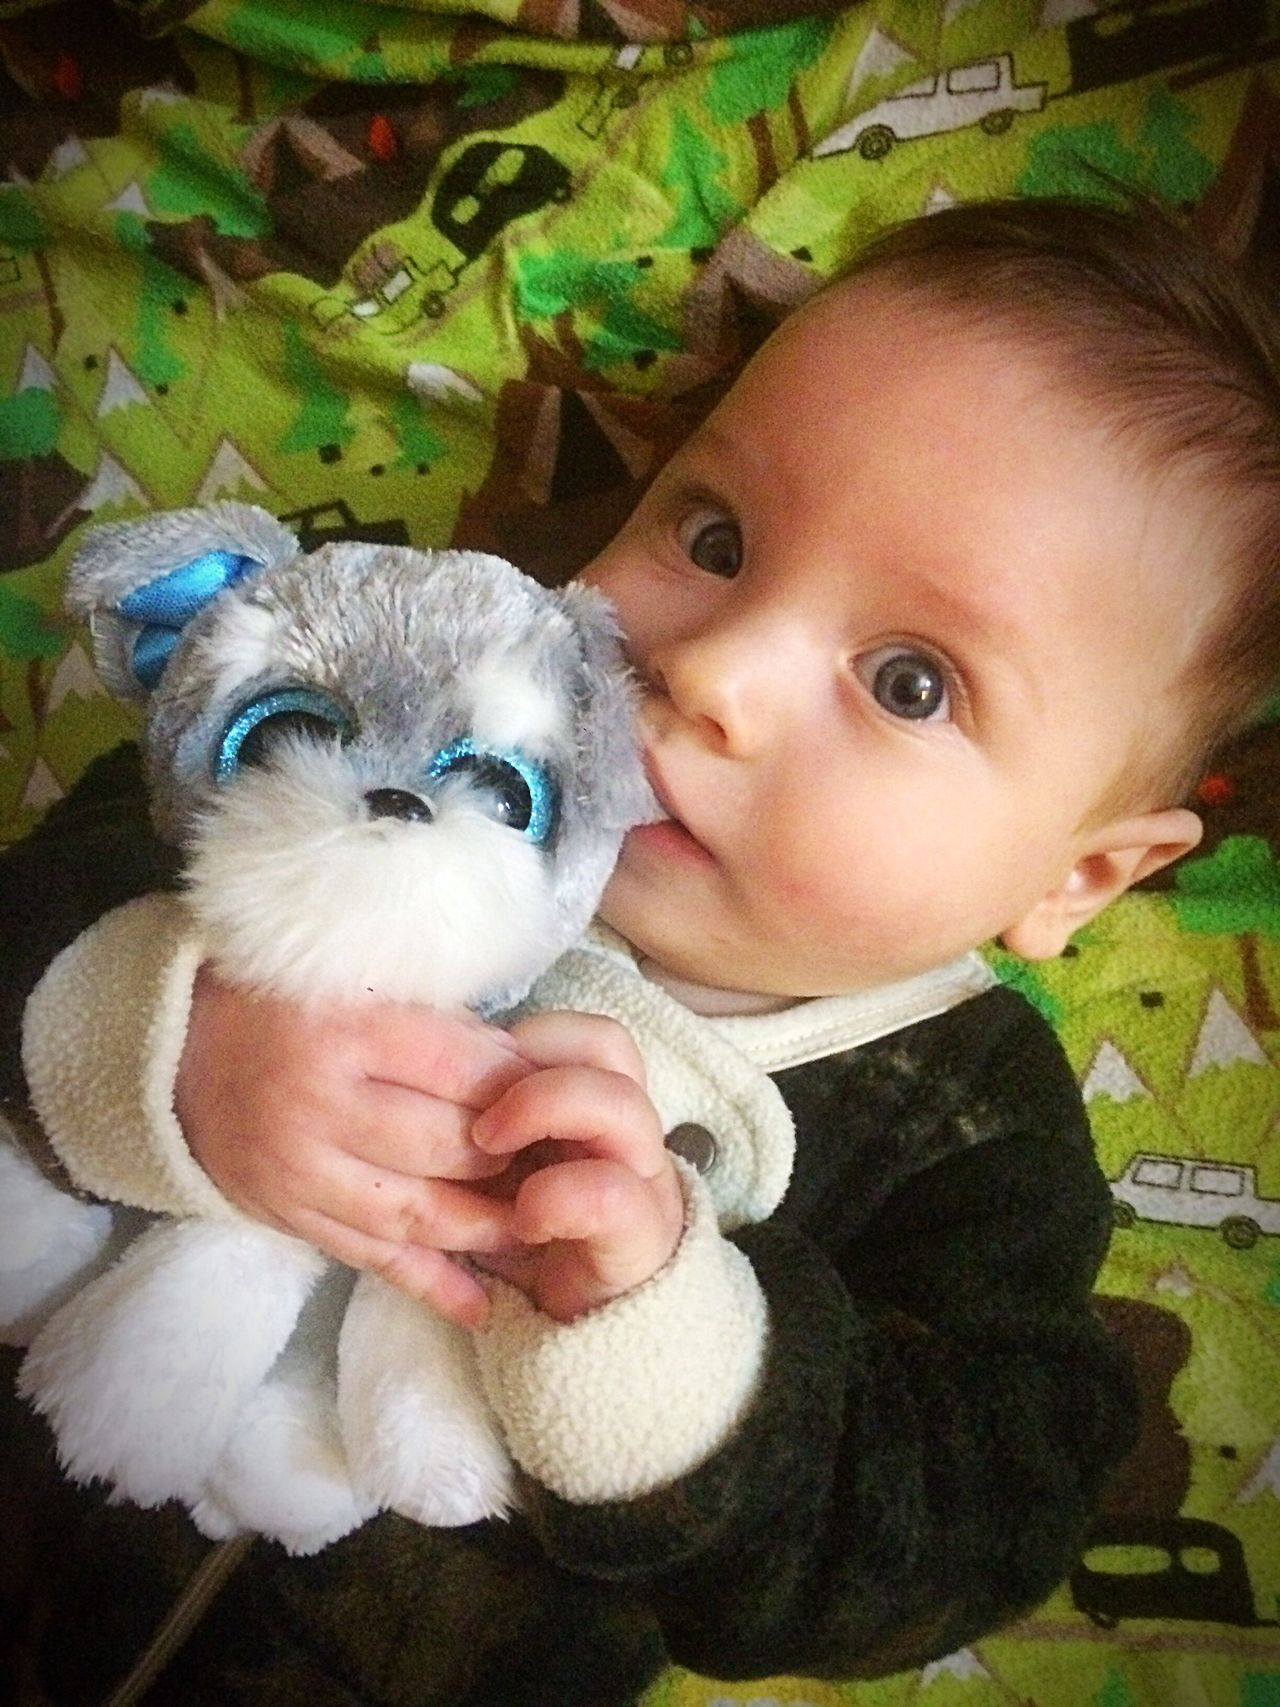 Innocent eyes Cute Innocence Portrait Childhood One Person Stuffed Toy Teddy Bear Indoors  Real People Front View Babyhood Animal Themes Home Interior Pacifier Domestic Animals Softness Close-up Baby Mammal